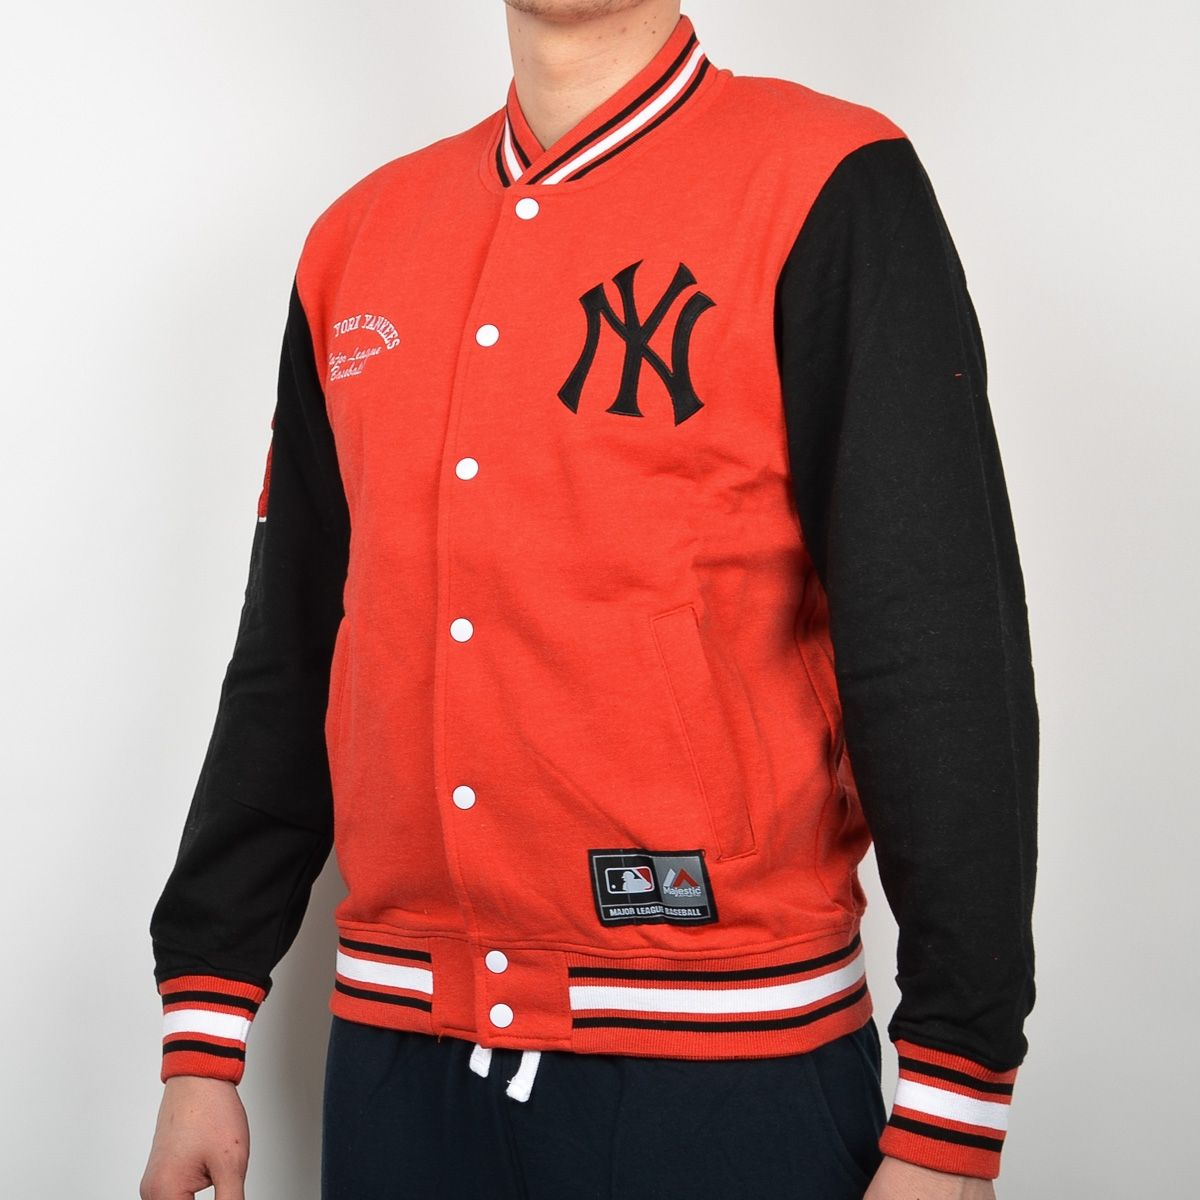 online retailer 067da 53b45 Type Hoodies Majestic MLB New York Yankees Senell Fleece Letterman jacket